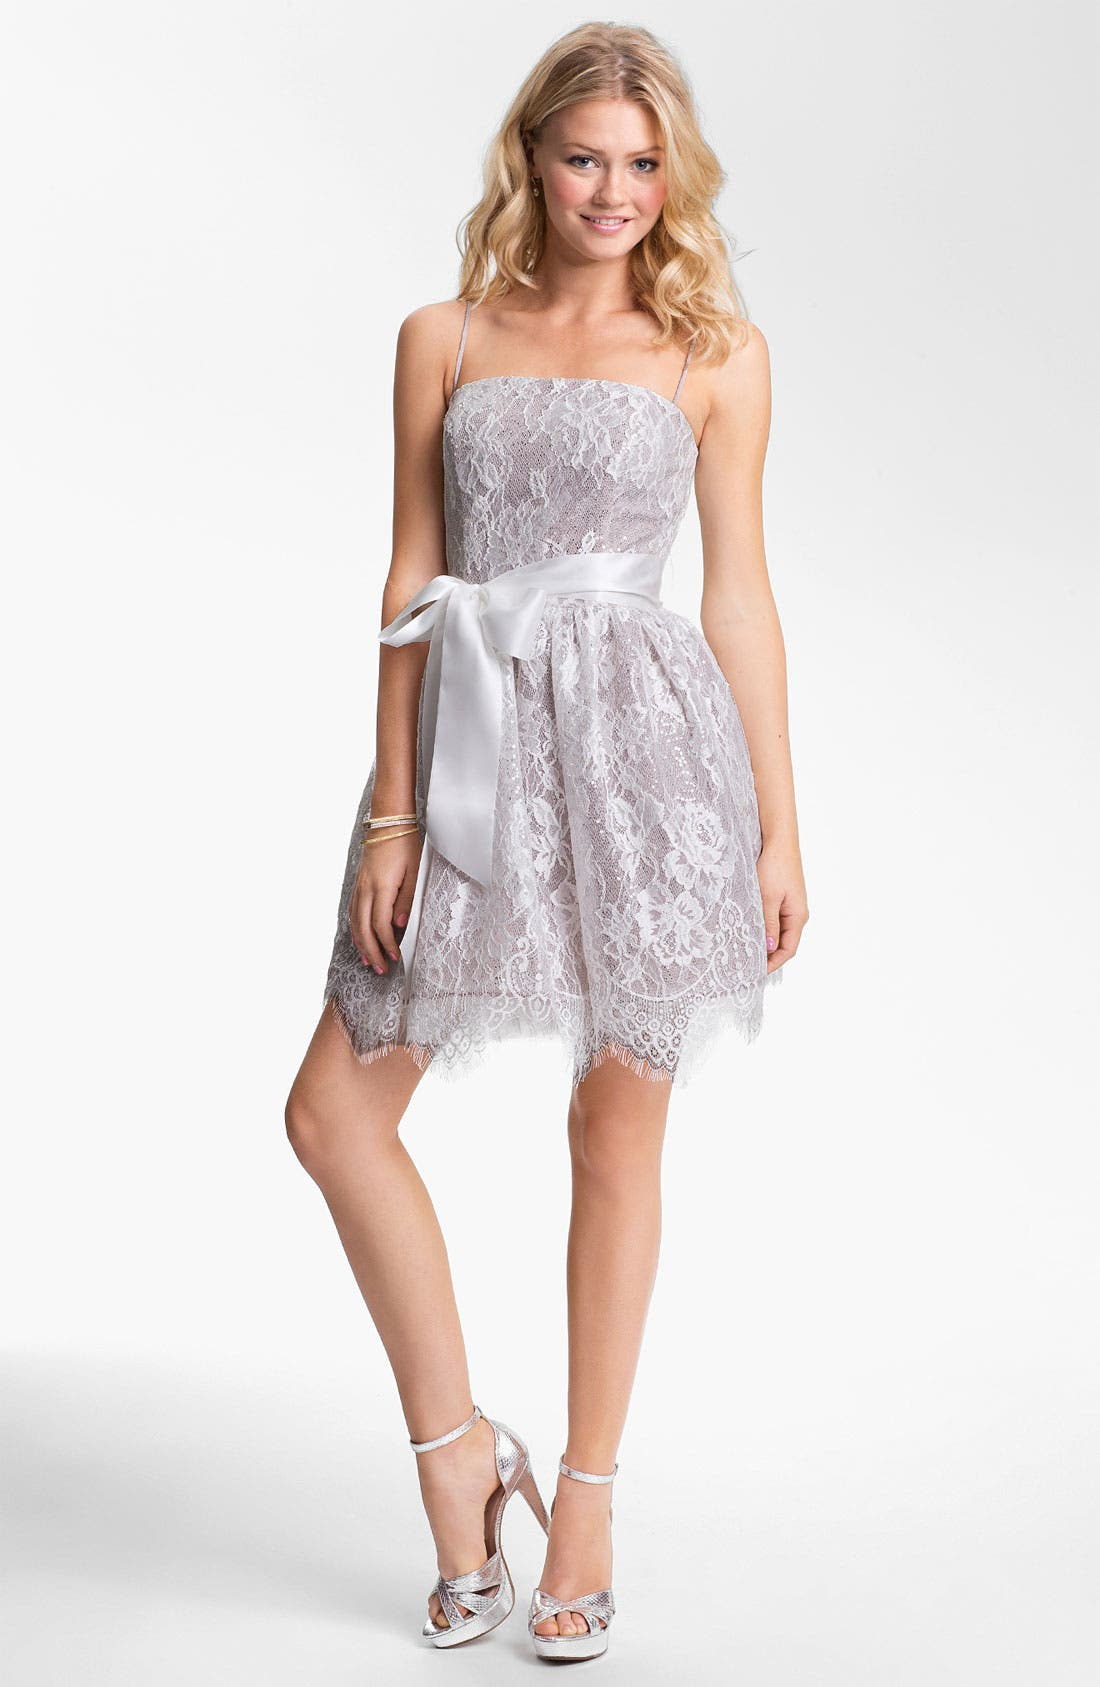 Alternate Image 1 Selected - Jessica McClintock Sequin Lace Fit & Flare Dress